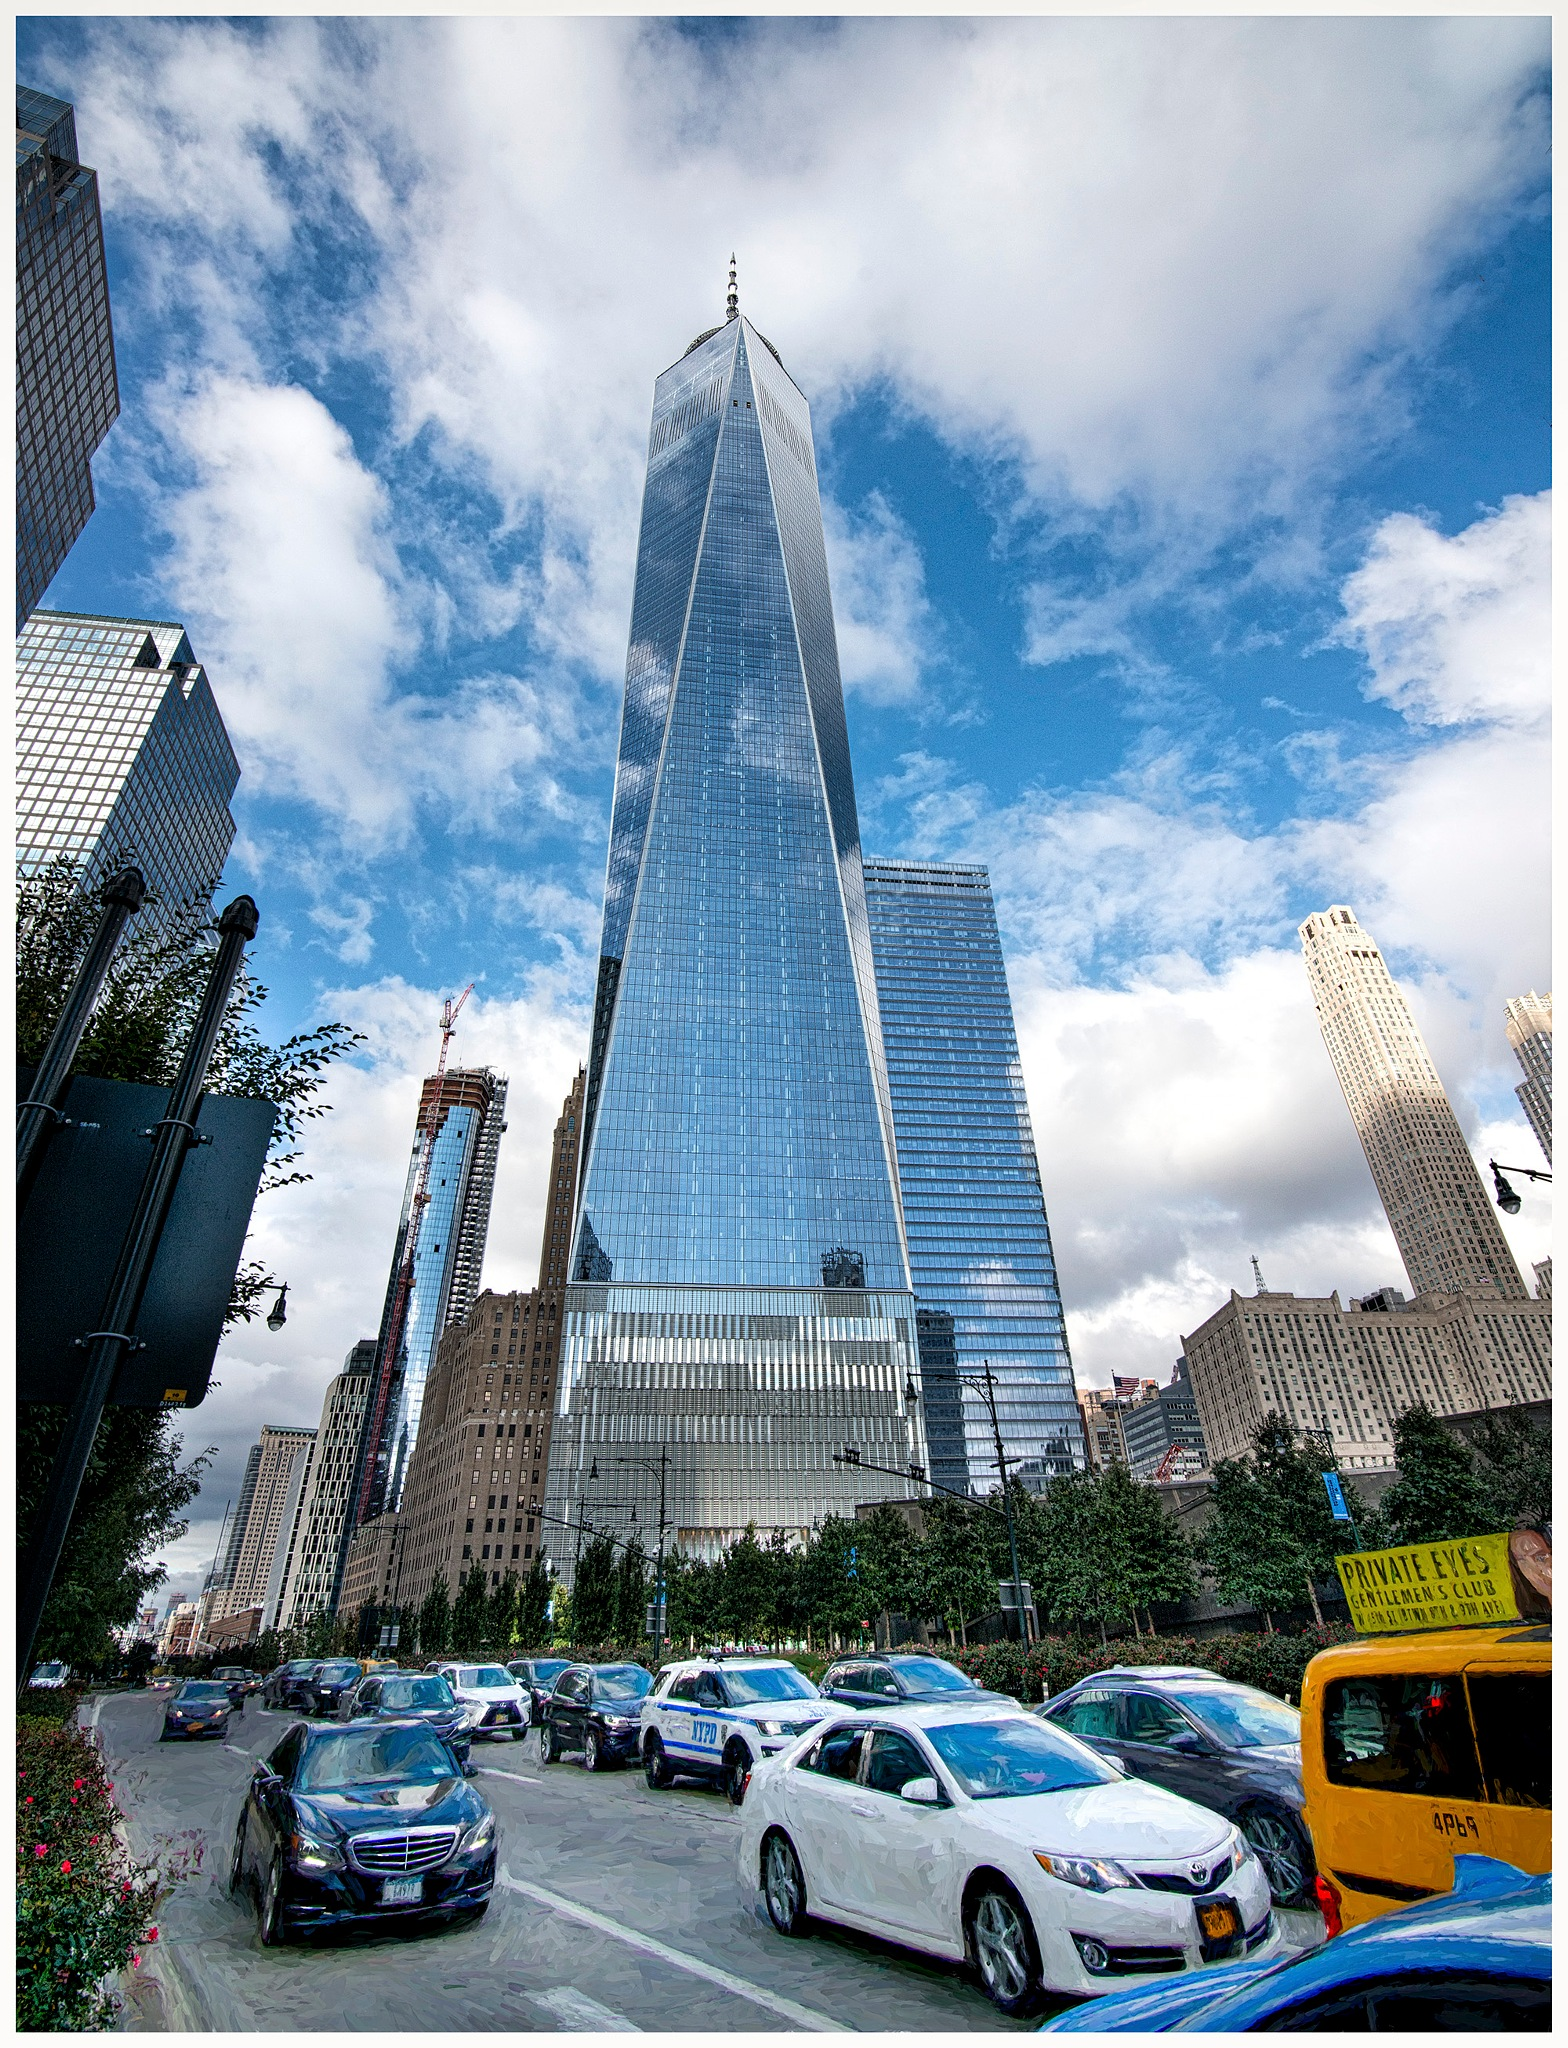 Freedom Tower and Traffic - NYC by tedurquhart1